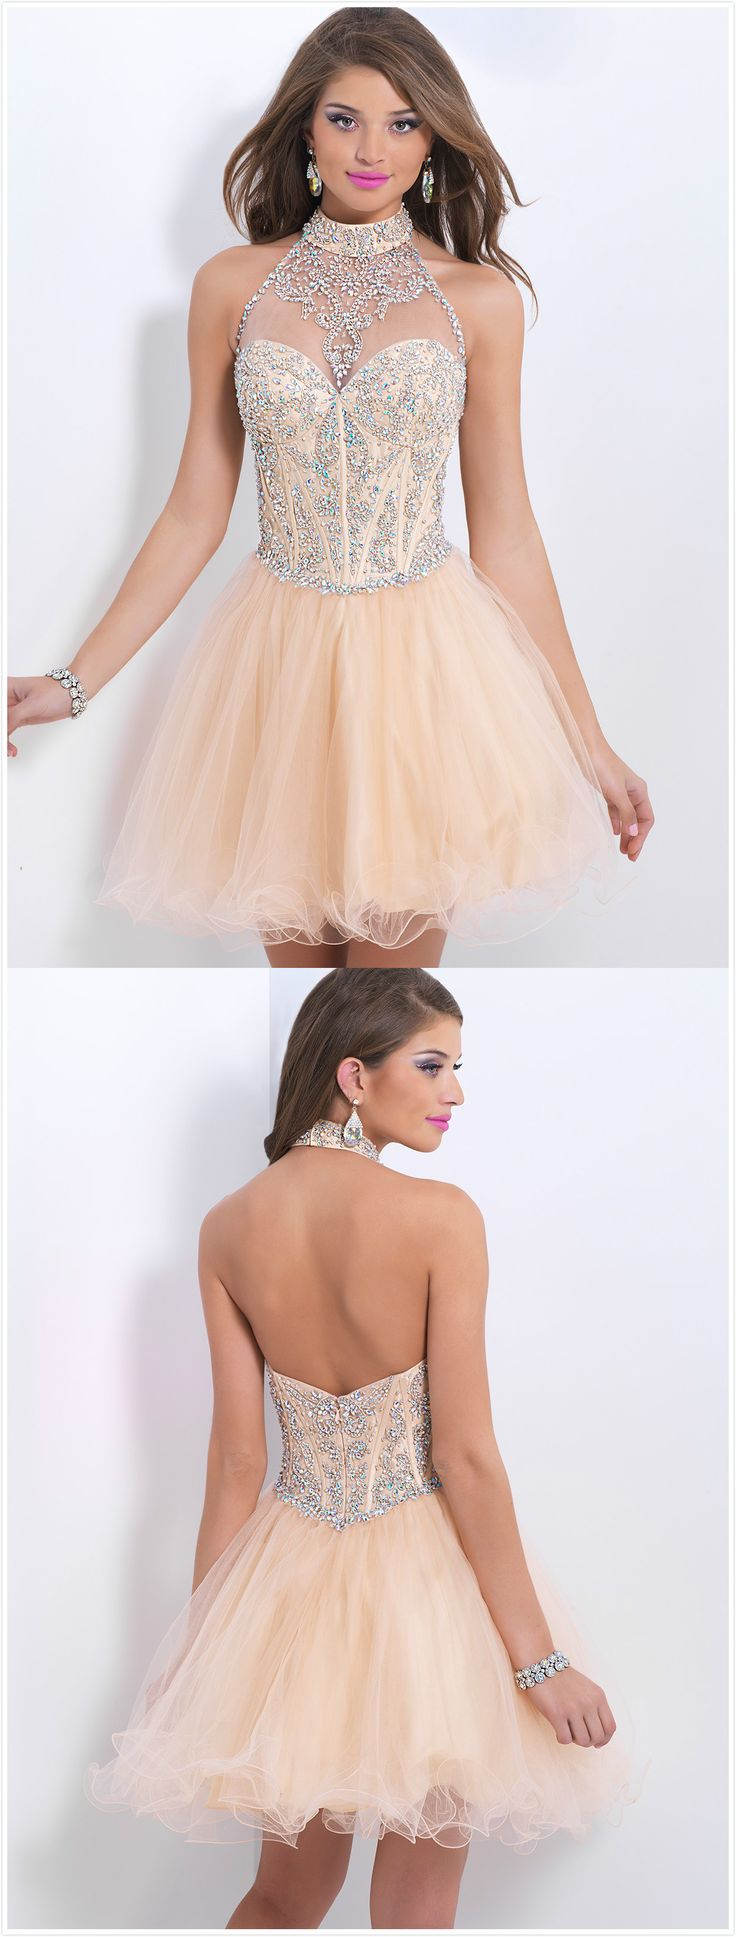 #homecoming dress, love the beading work, really amazing! Love the open back with halter neck, sexy!